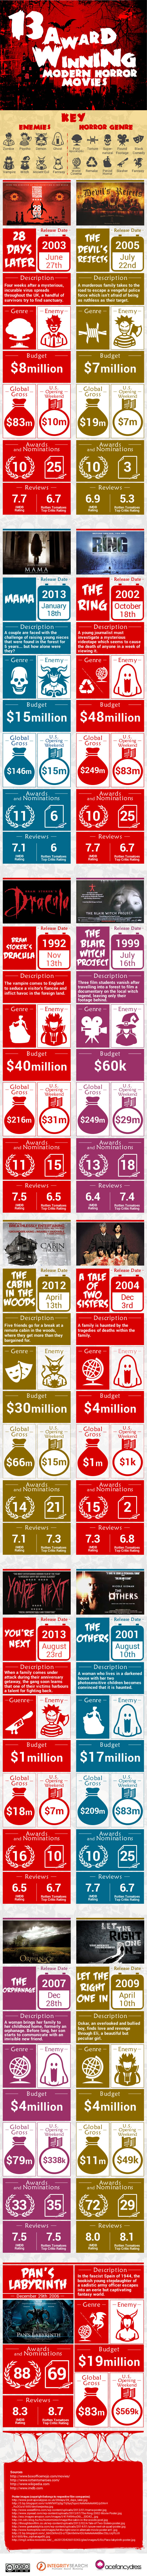 Thirteen Award Winning Modern Horror Movies Infographic